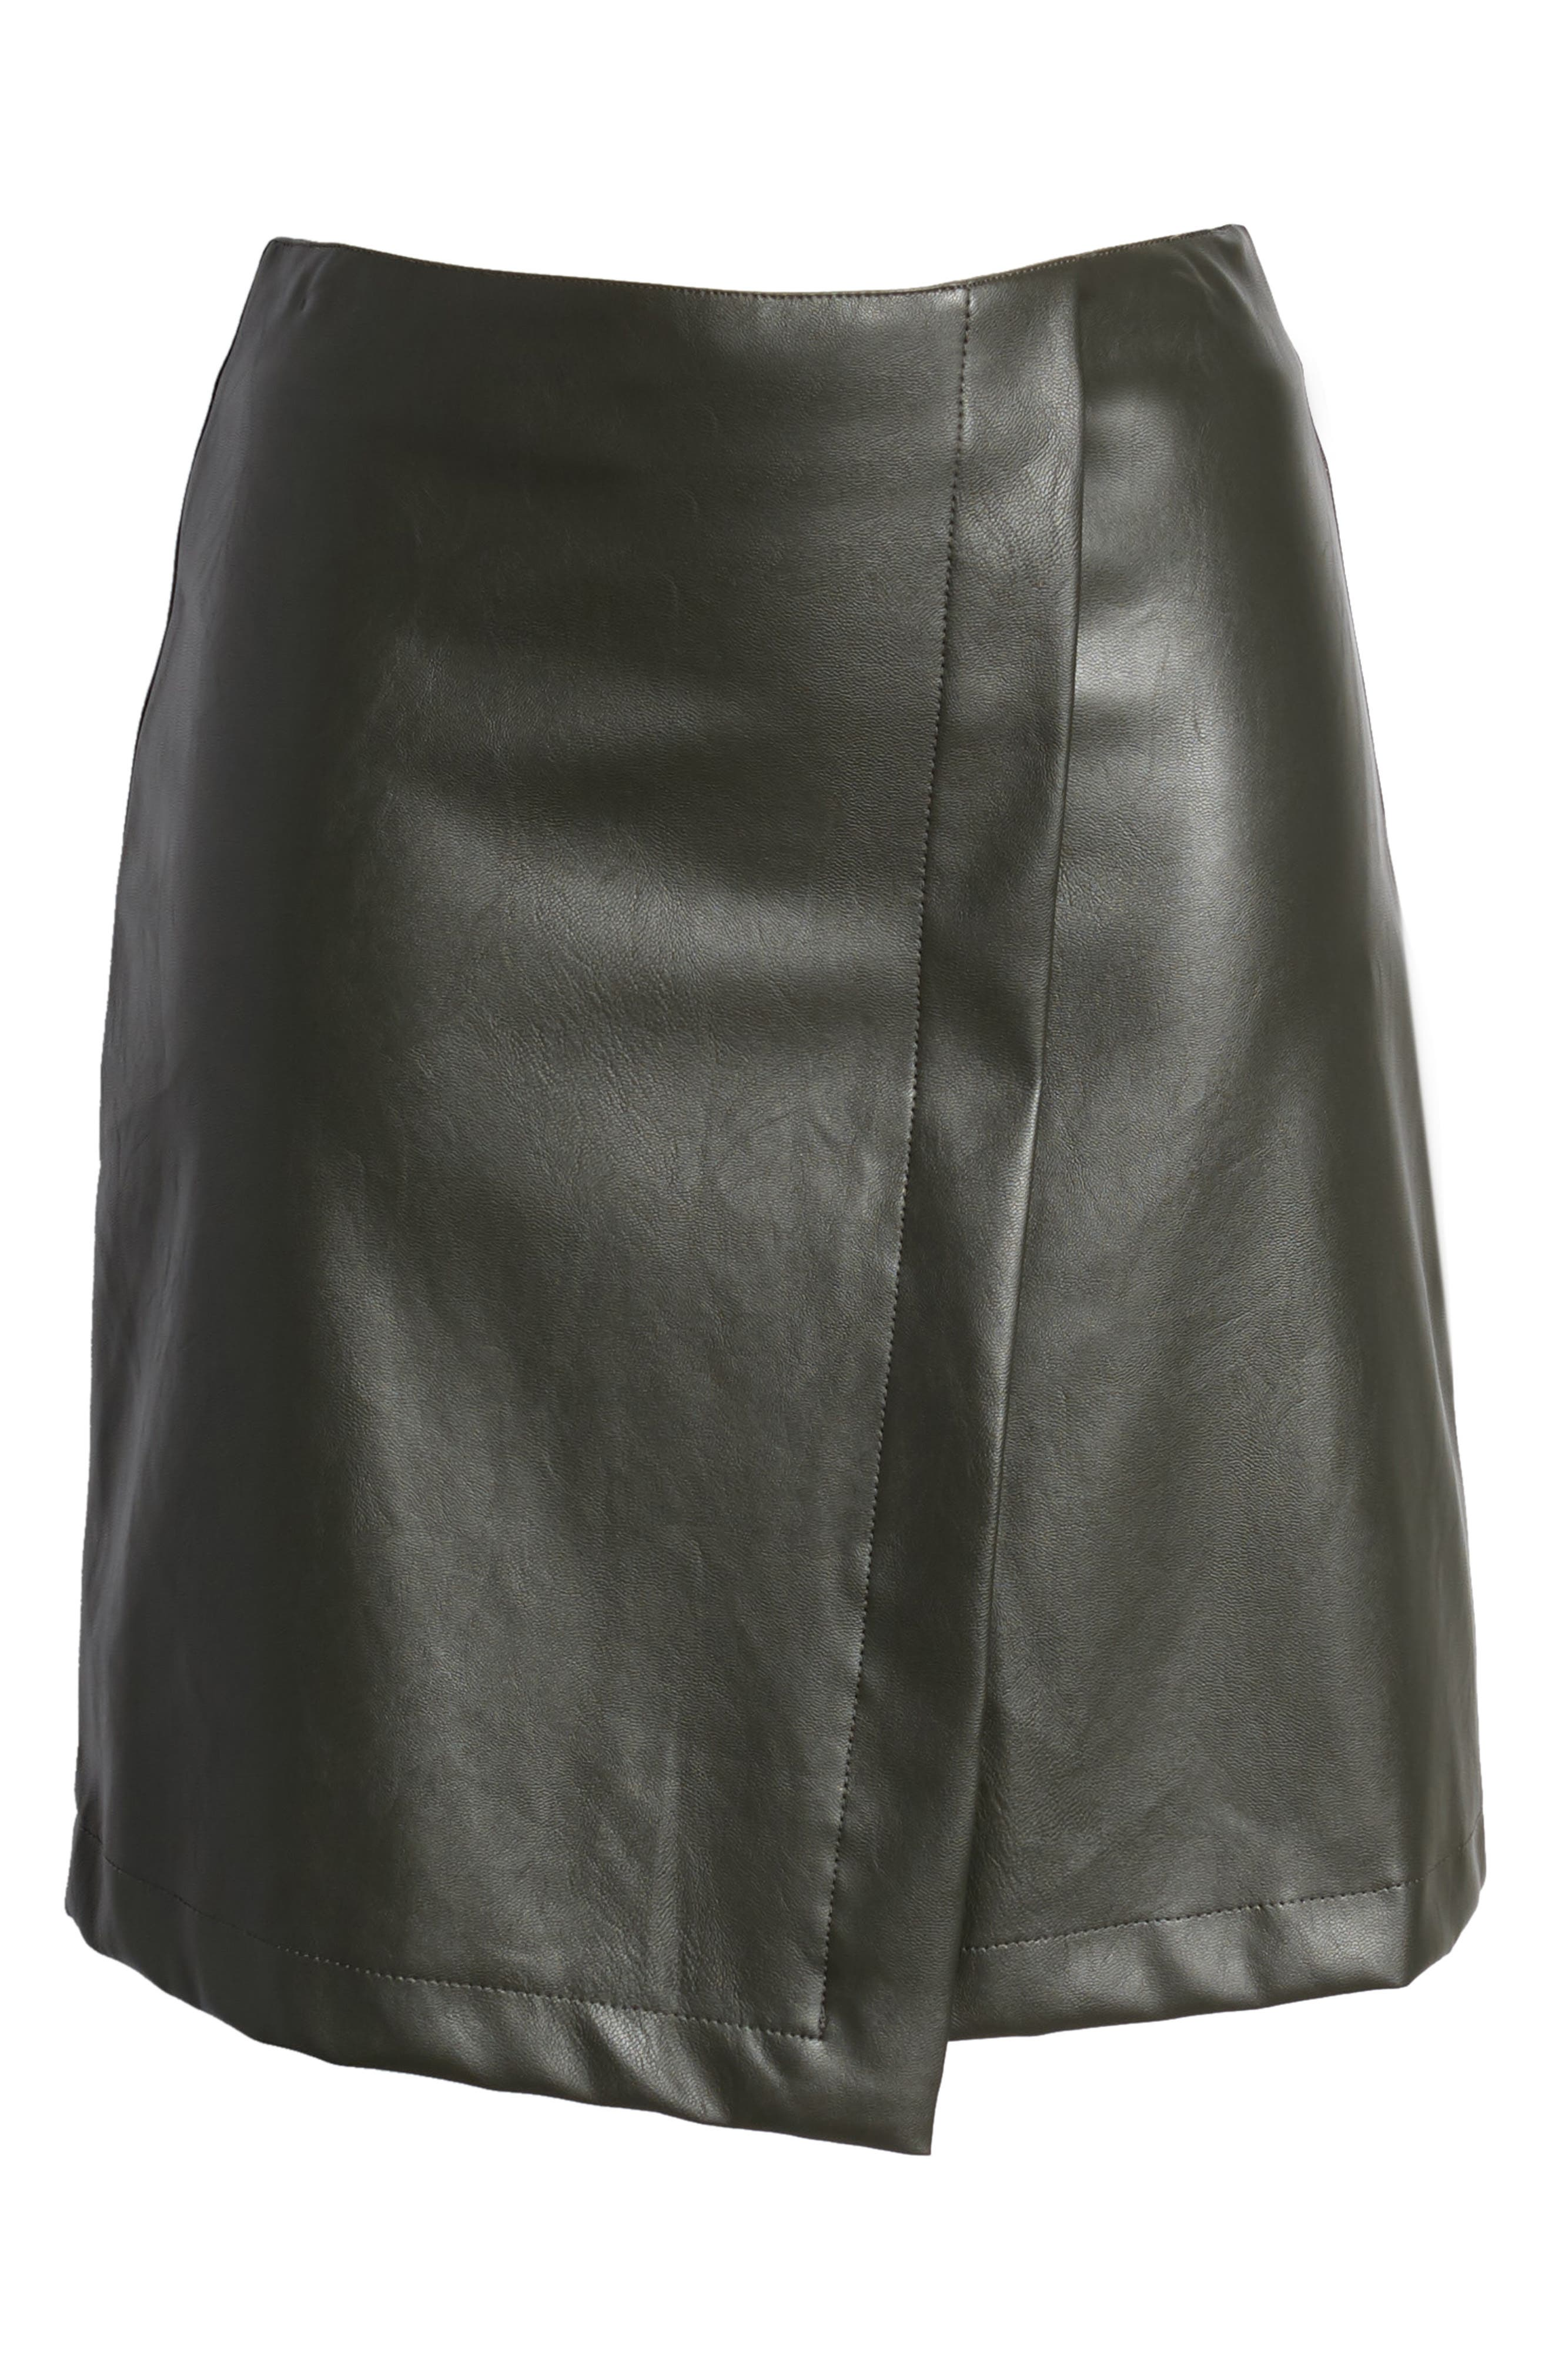 Bishop + Young A-Line Faux Leather Miniskirt,                             Alternate thumbnail 6, color,                             Olive